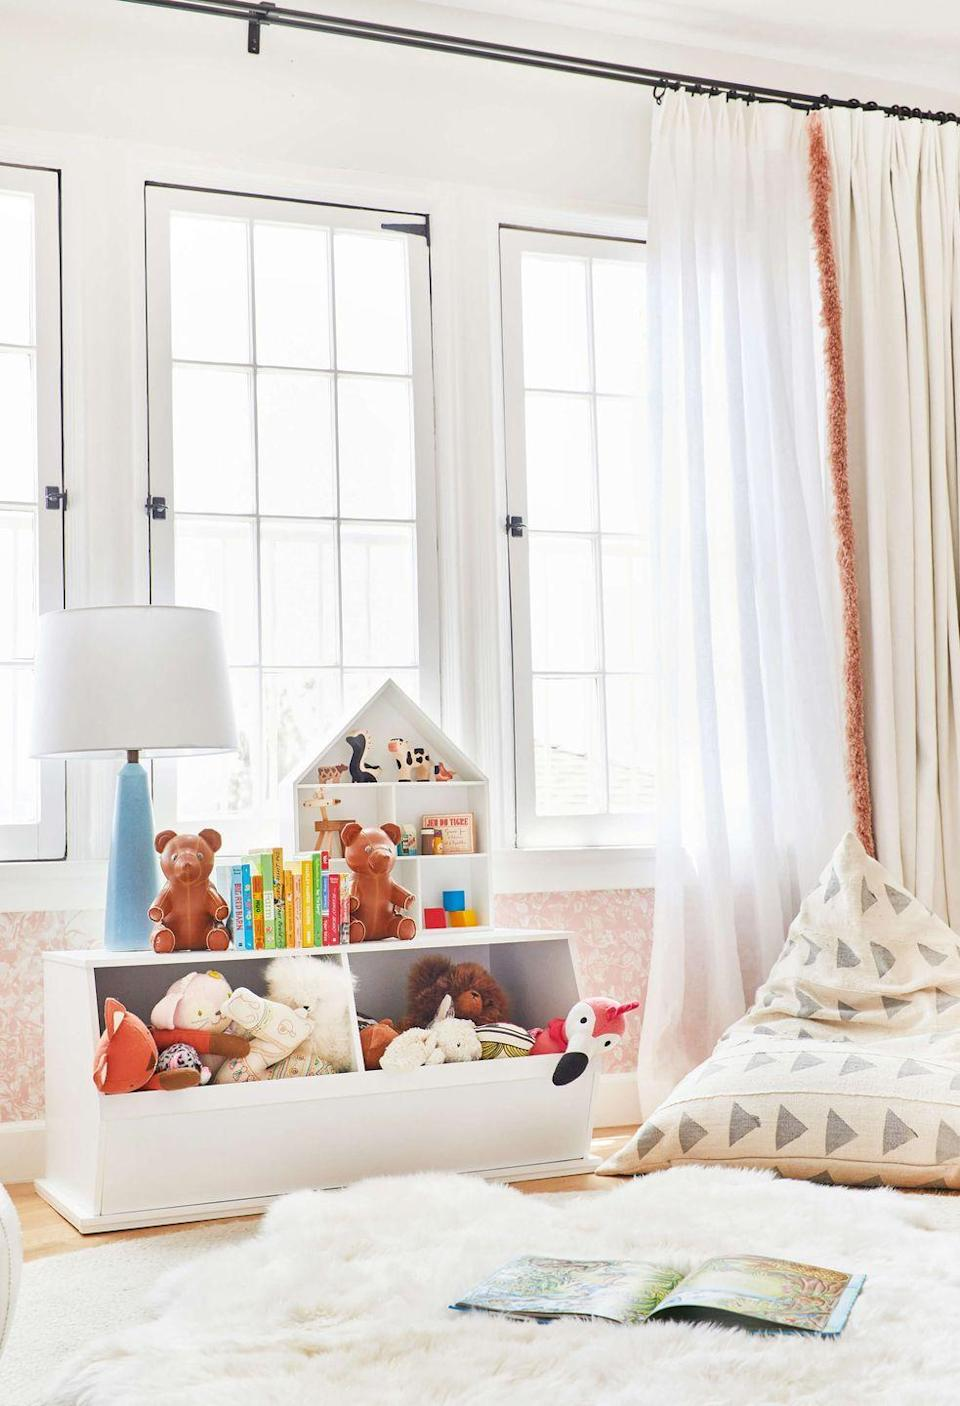 """<p>Keep shelving units for smaller kids' rooms low to the ground to prevent heavier toys from falling down.</p><p><strong>See more at <a href=""""https://stylebyemilyhenderson.com/blog/elliots-nursery-reveal"""" rel=""""nofollow noopener"""" target=""""_blank"""" data-ylk=""""slk:Emily Henderson"""" class=""""link rapid-noclick-resp"""">Emily Henderson</a>.</strong></p><p><strong><strong><strong><a class=""""link rapid-noclick-resp"""" href=""""https://www.amazon.com/s?k=plastic+storage+bins&ref=nb_sb_noss_2&tag=syn-yahoo-20&ascsubtag=%5Bartid%7C10063.g.36014277%5Bsrc%7Cyahoo-us"""" rel=""""nofollow noopener"""" target=""""_blank"""" data-ylk=""""slk:SHOP PLASTIC STORAGE BINS"""">SHOP PLASTIC STORAGE BINS</a></strong></strong><br></strong></p>"""